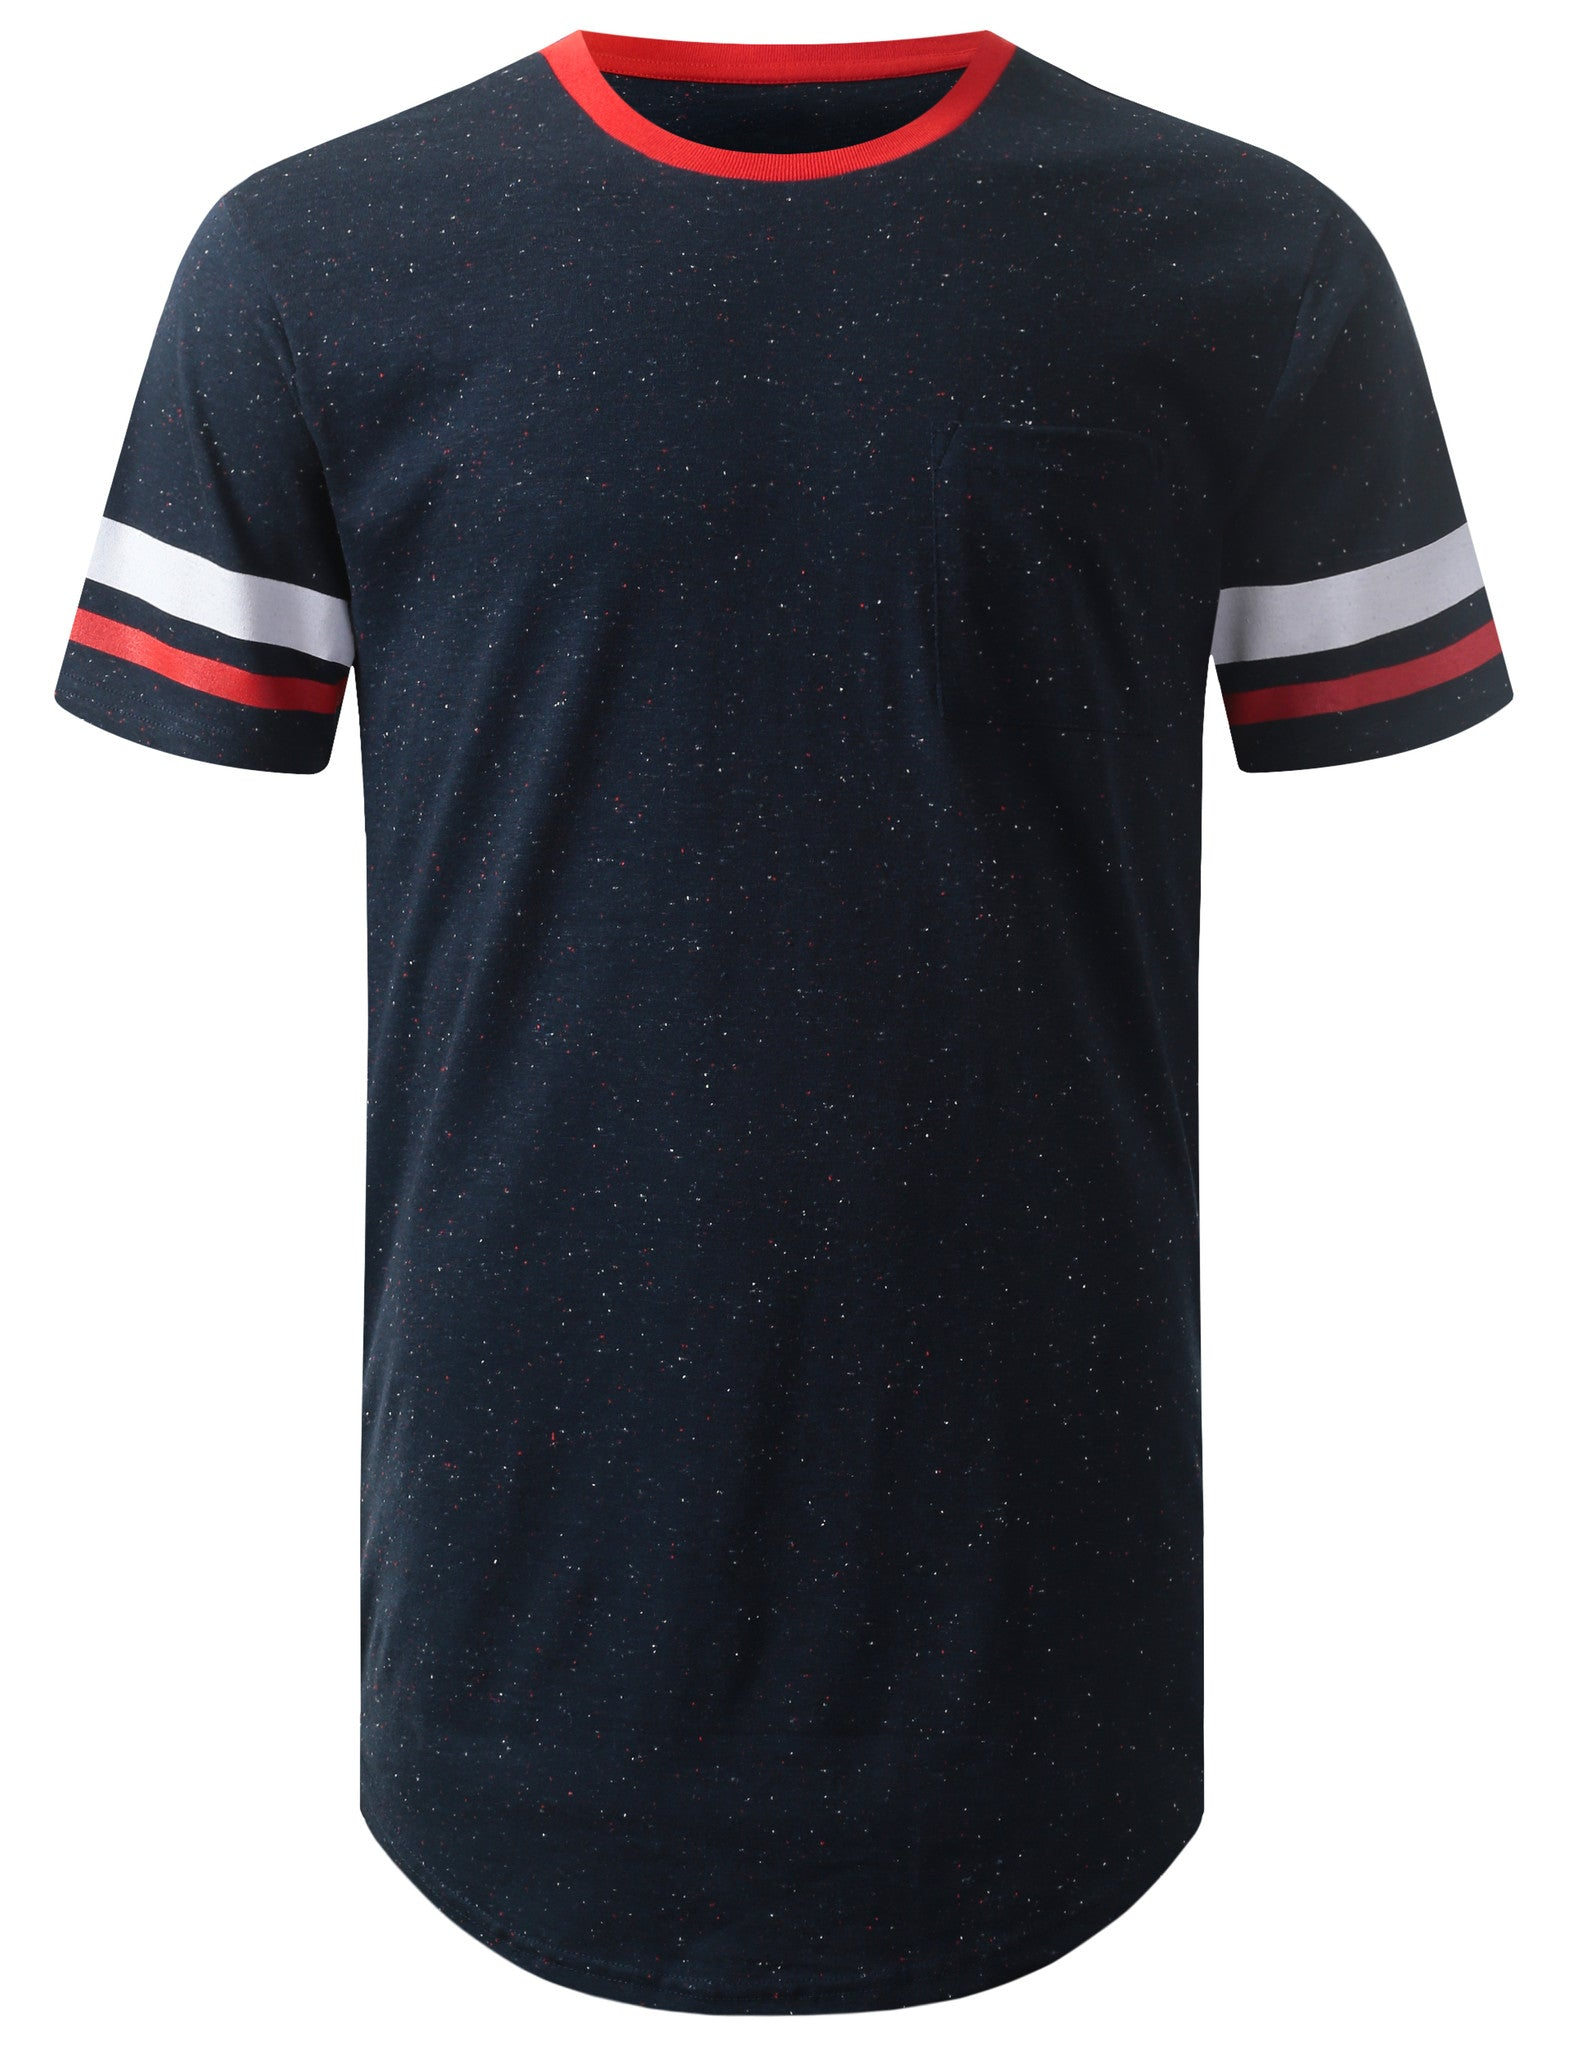 BLACK Speckle Pocket Longline Tshirt- URBANCREWS